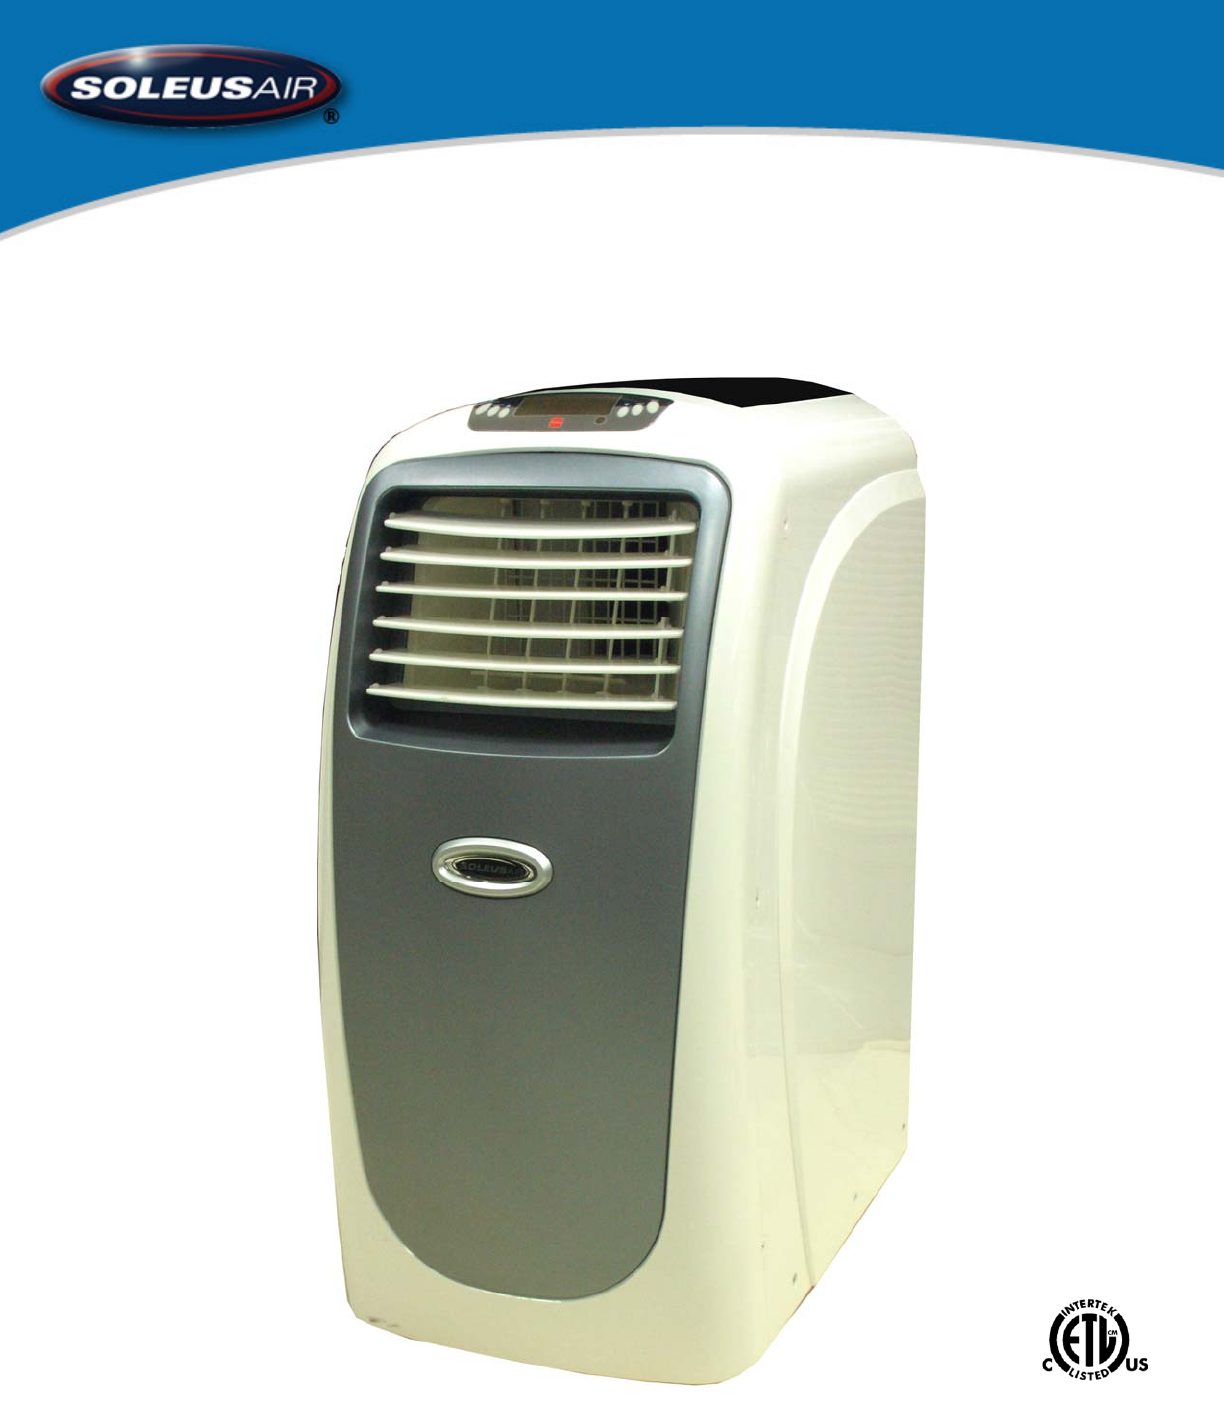 Soleus Air Air Conditioner PE2 07R 62 User Guide ManualsOnline.com #0770B1